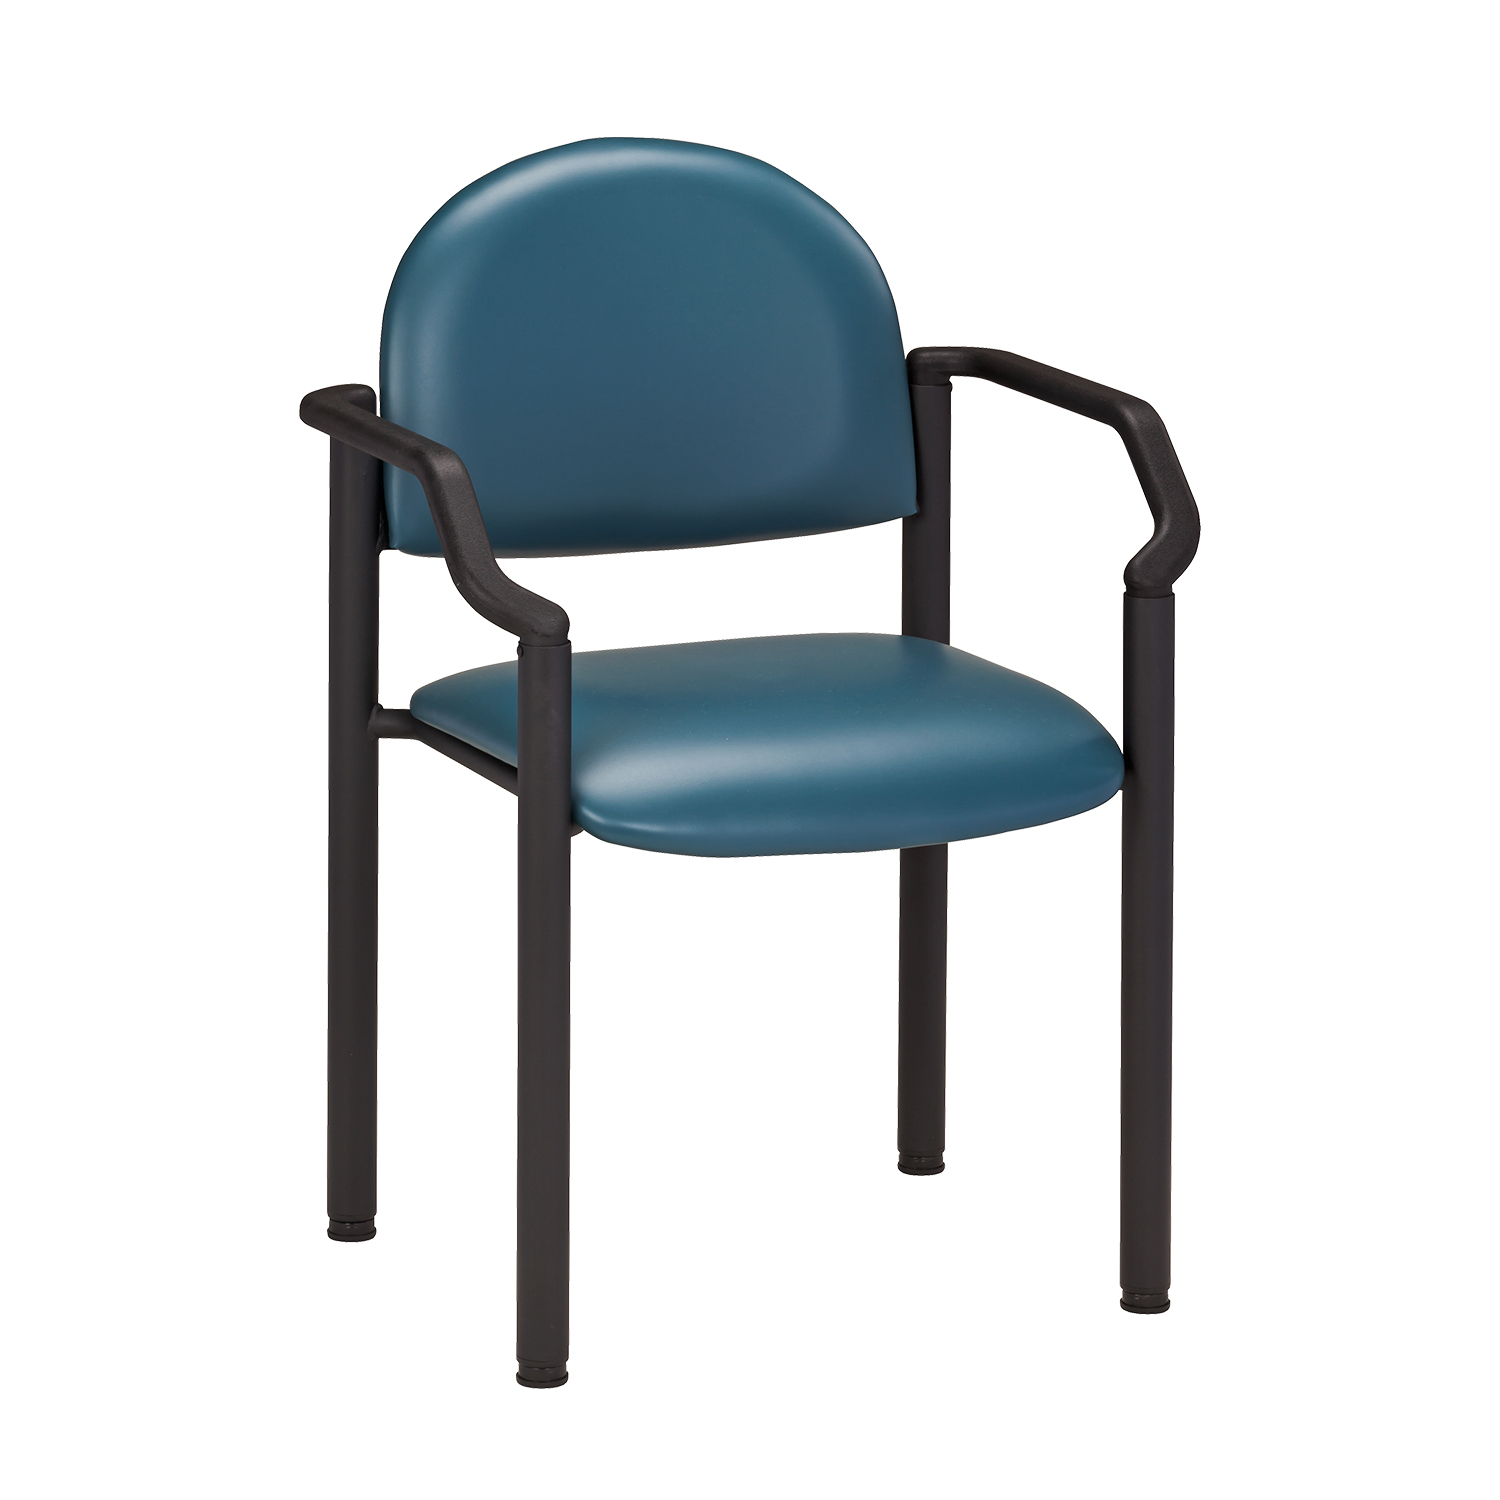 Clinton Black Frame Chair with Arms